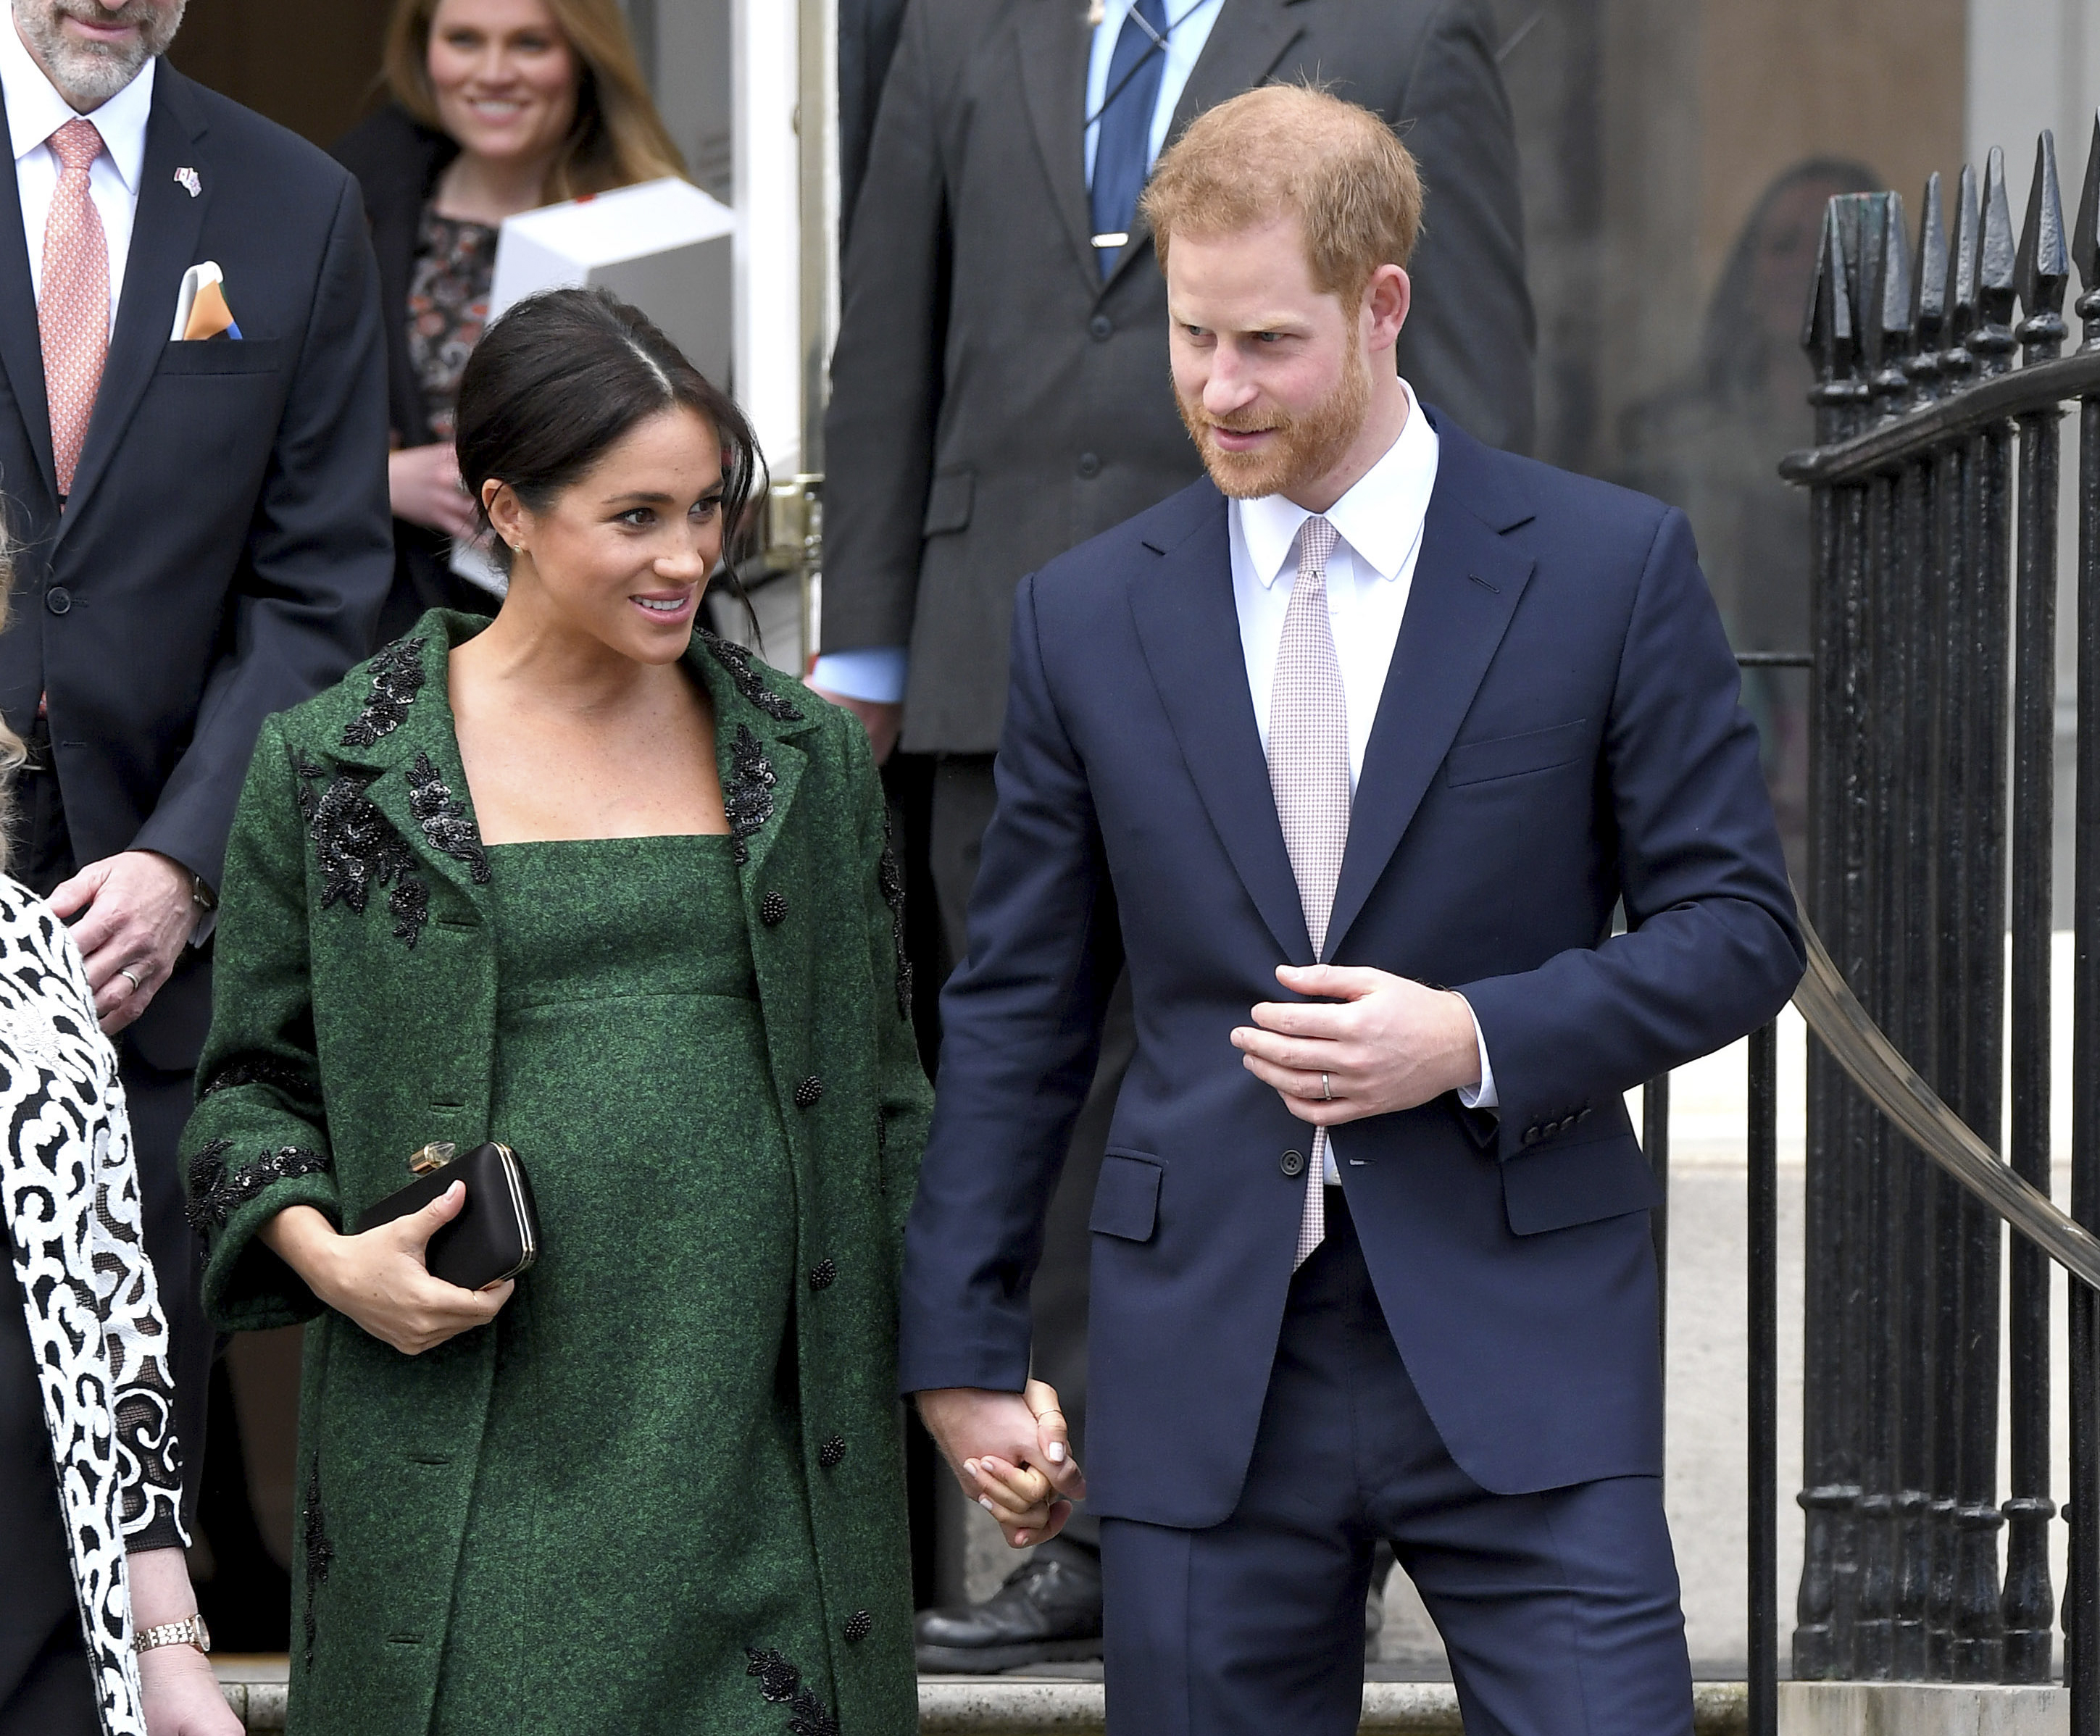 will meghan markle go glam for her first appearance with her new baby macleans ca https www macleans ca royalty will meghan markle go glam for her first appearance with her new baby